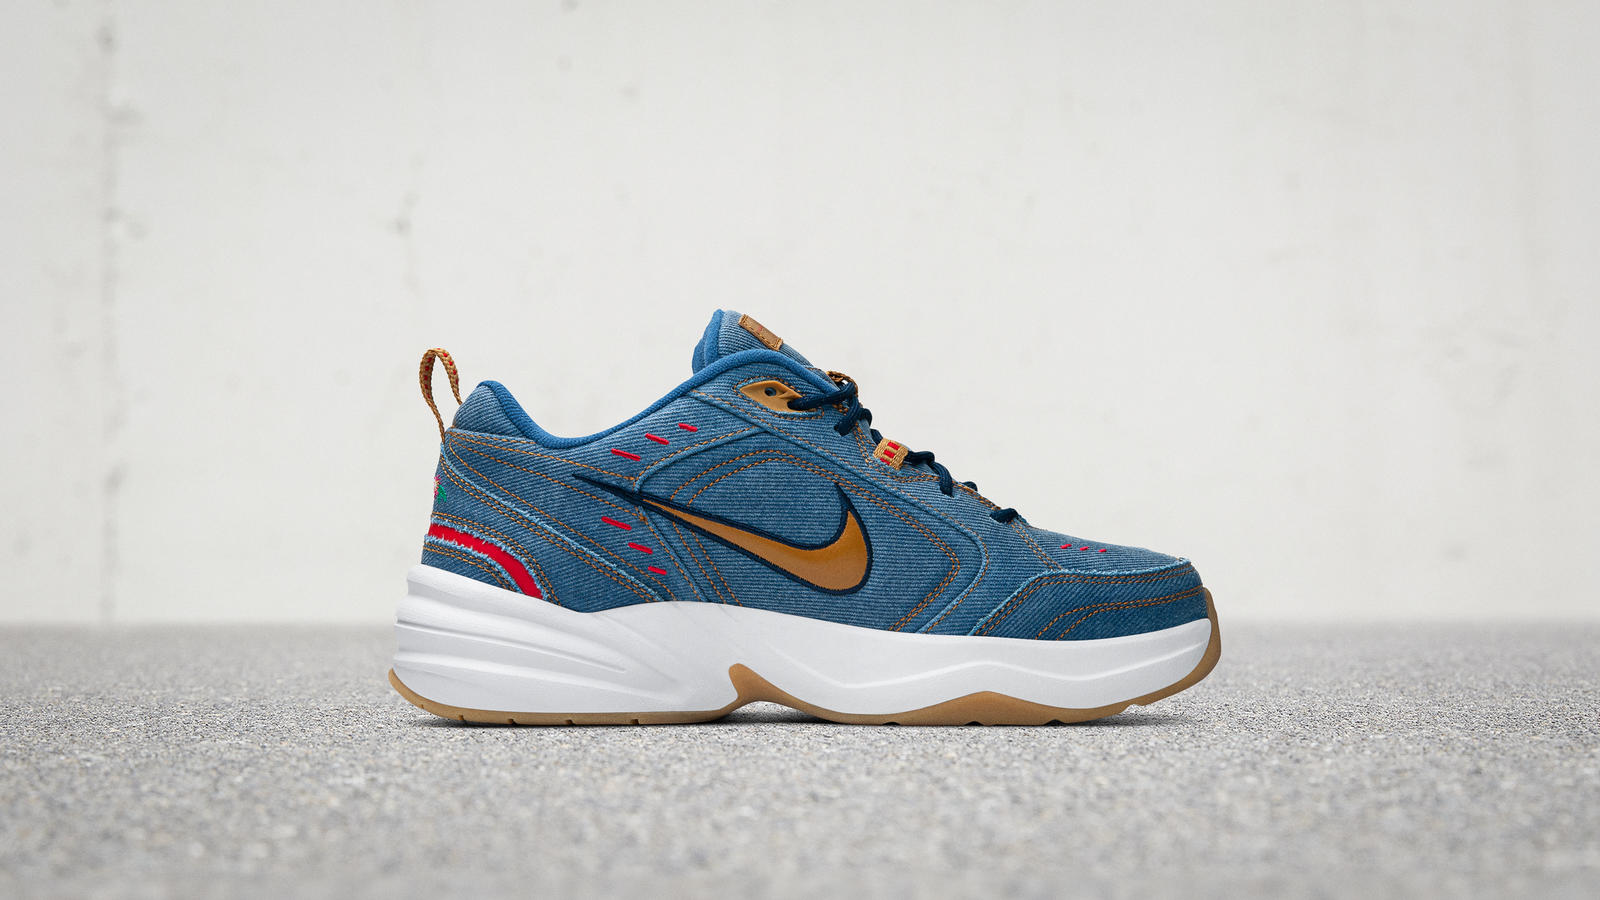 Nike Air Monarch 4 Denim Official Images and Release Date 4